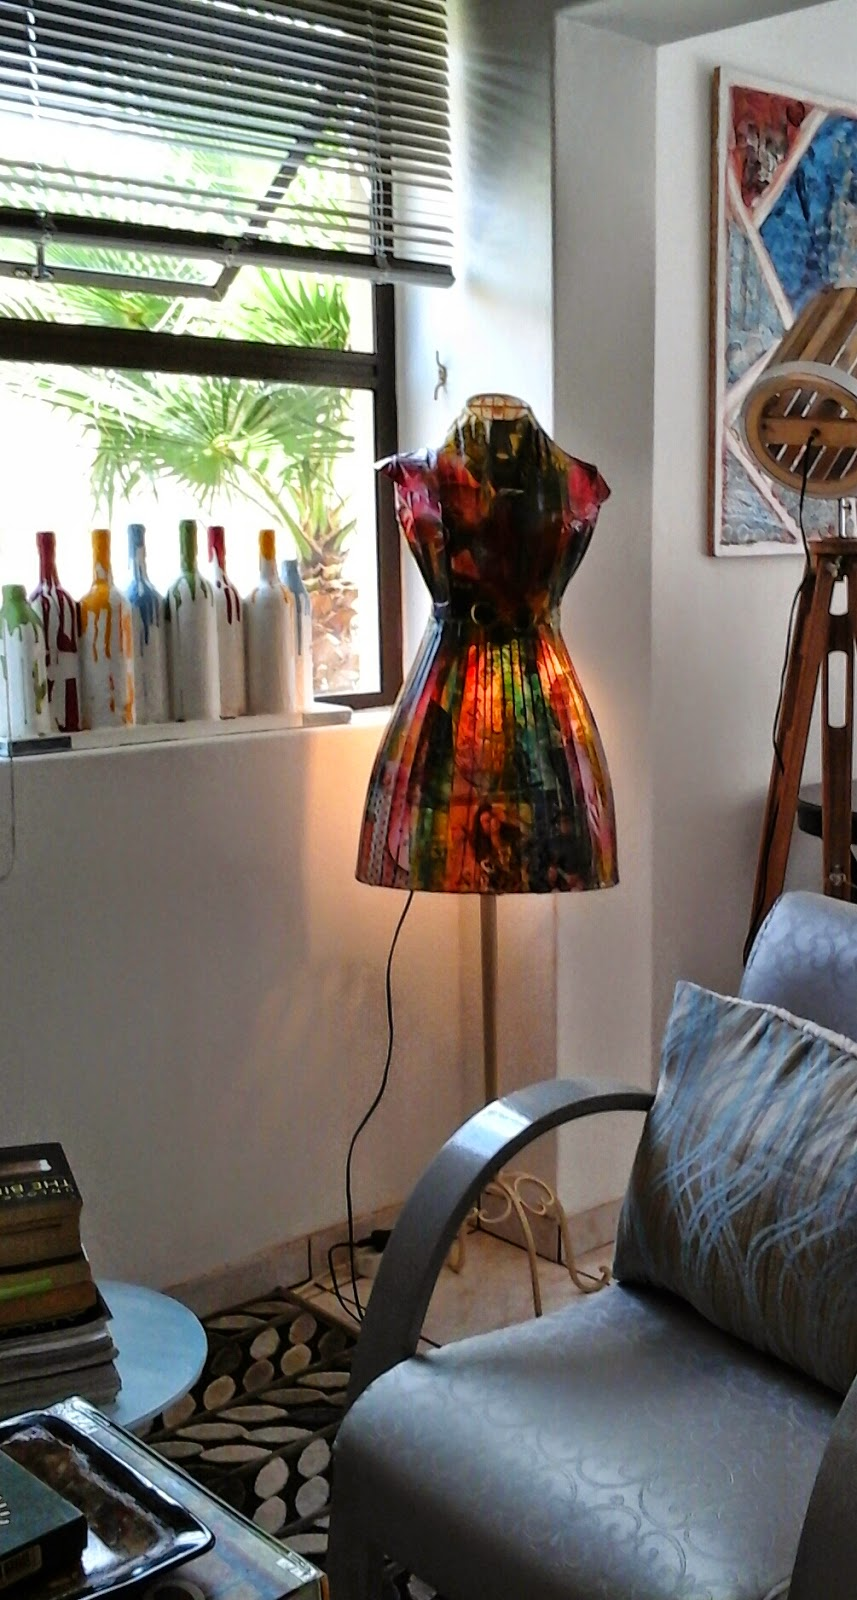 Mannequin Lamp my vintage mannequin lamp stand ( art and craft)miabo enyadike